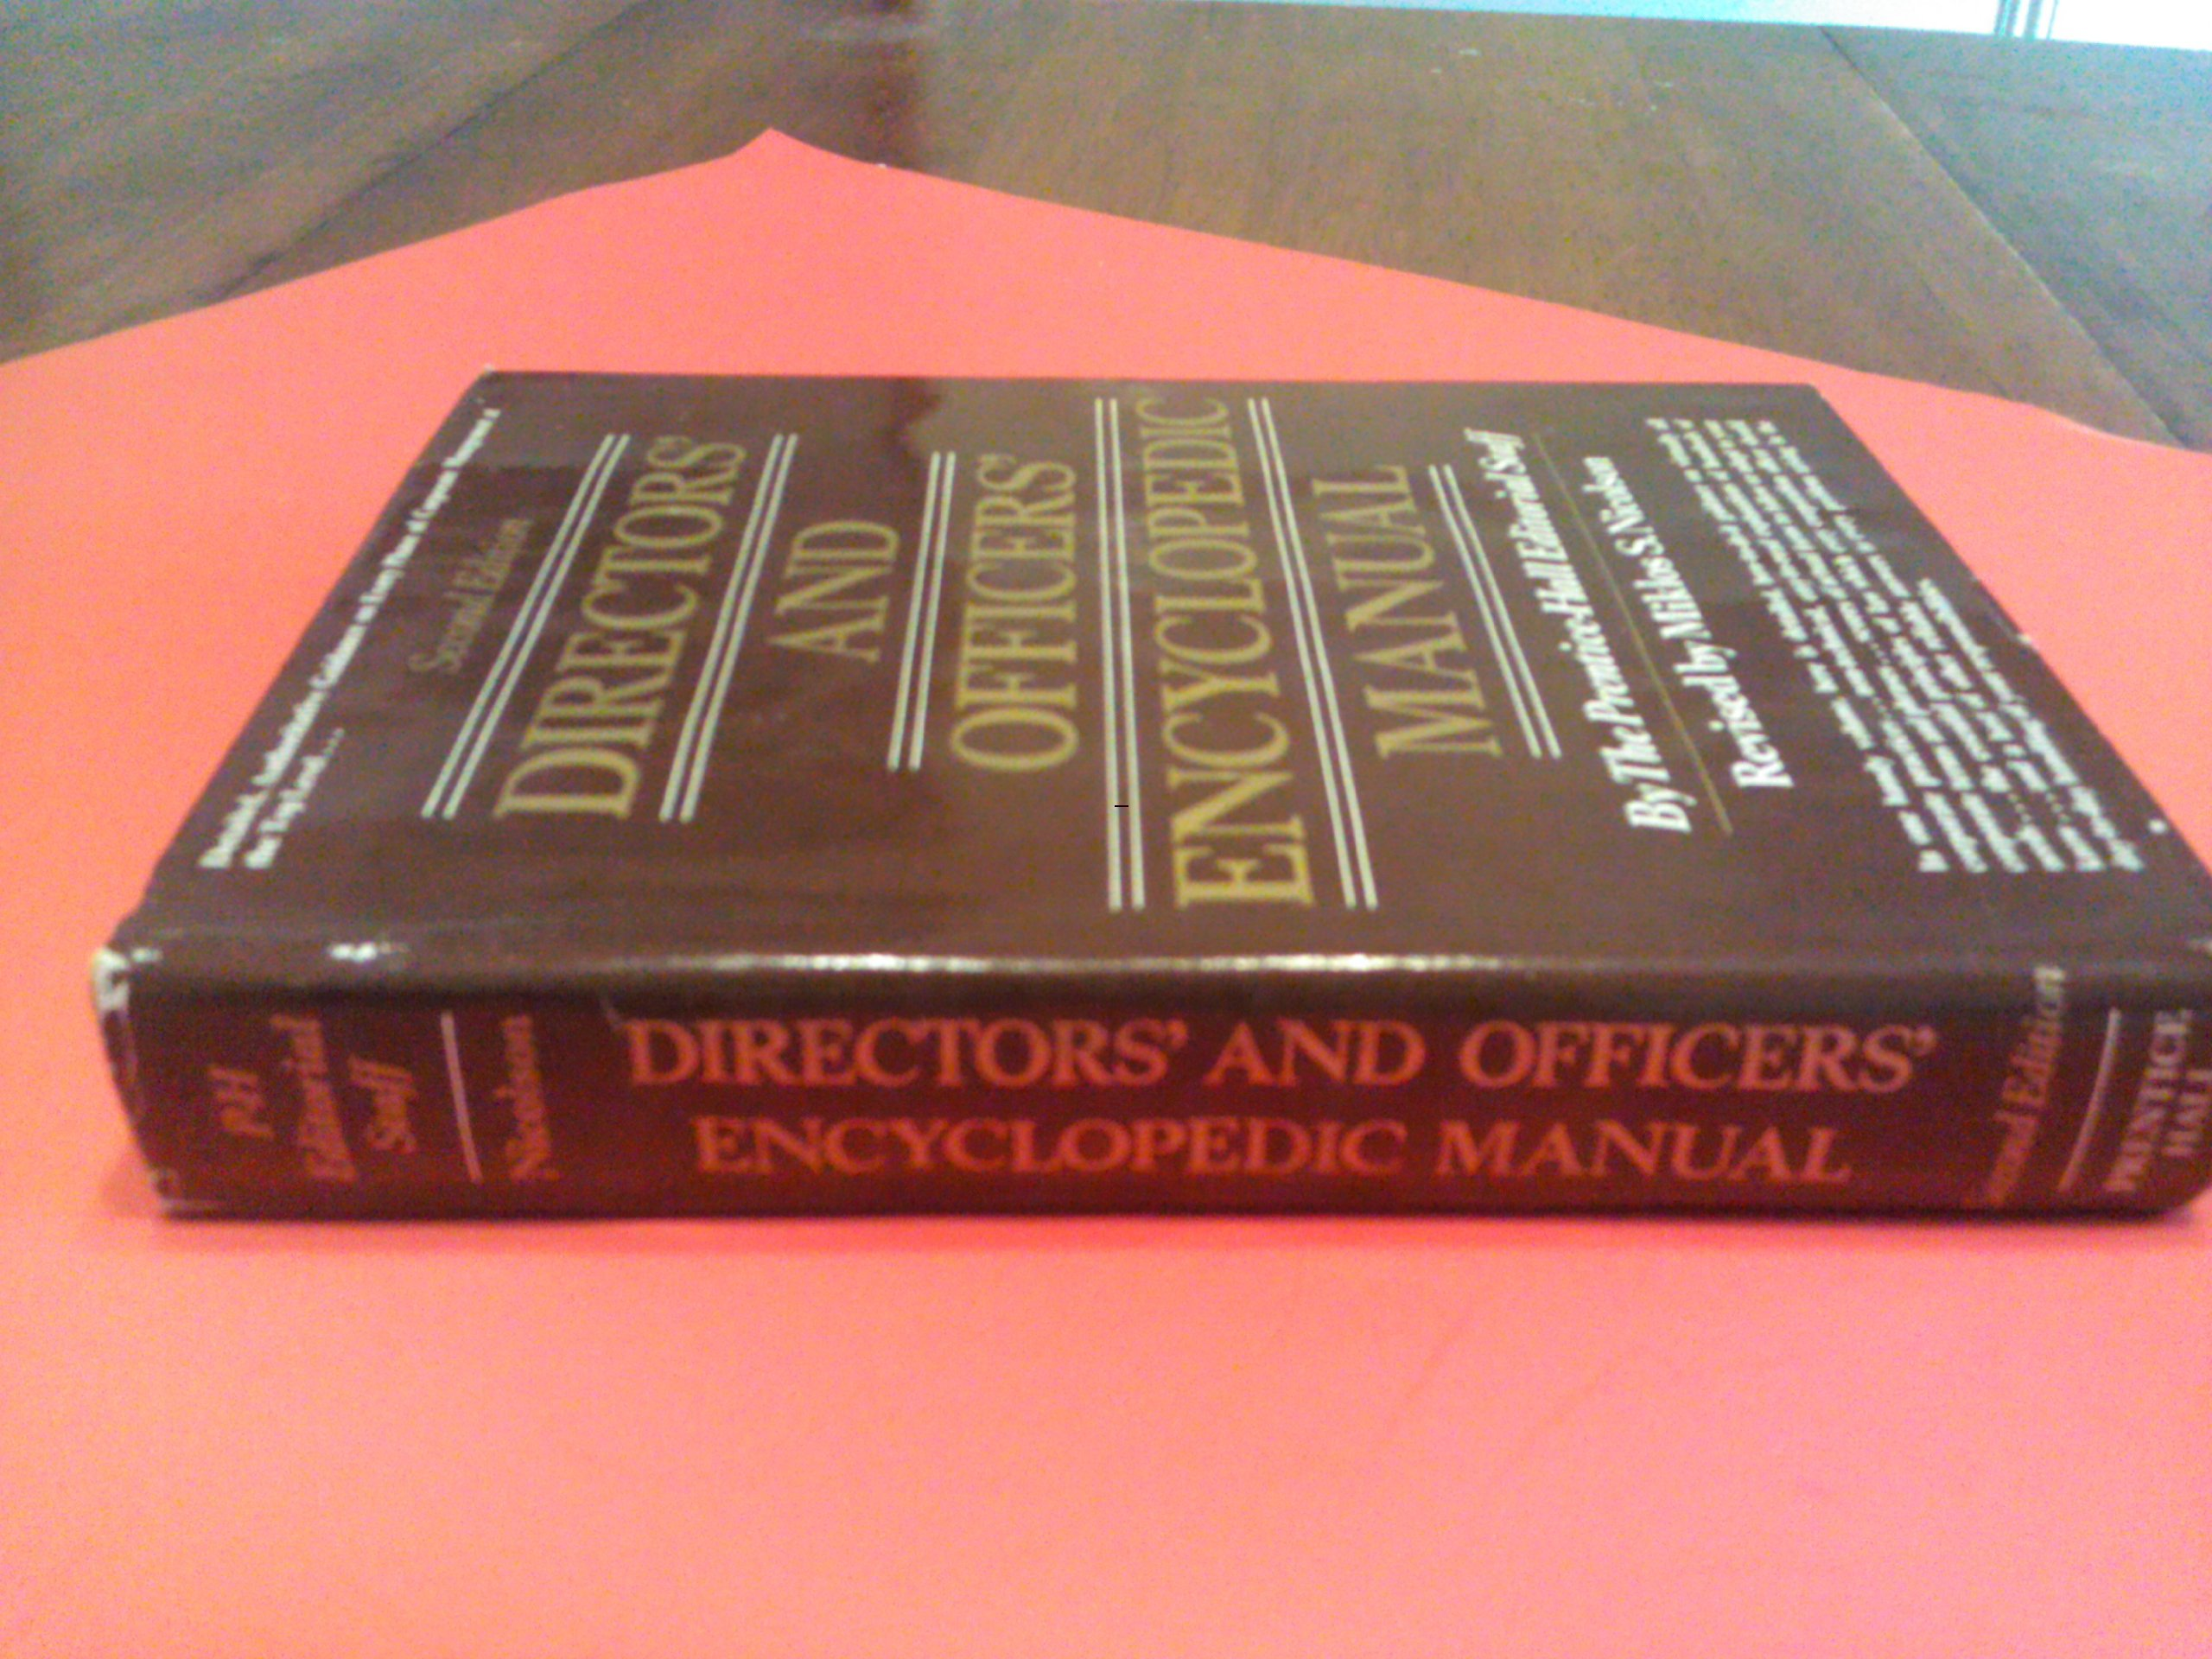 Amazon.fr - Directors' and officers' encyclopedic manual - inc  Prentice-Hall - Livres